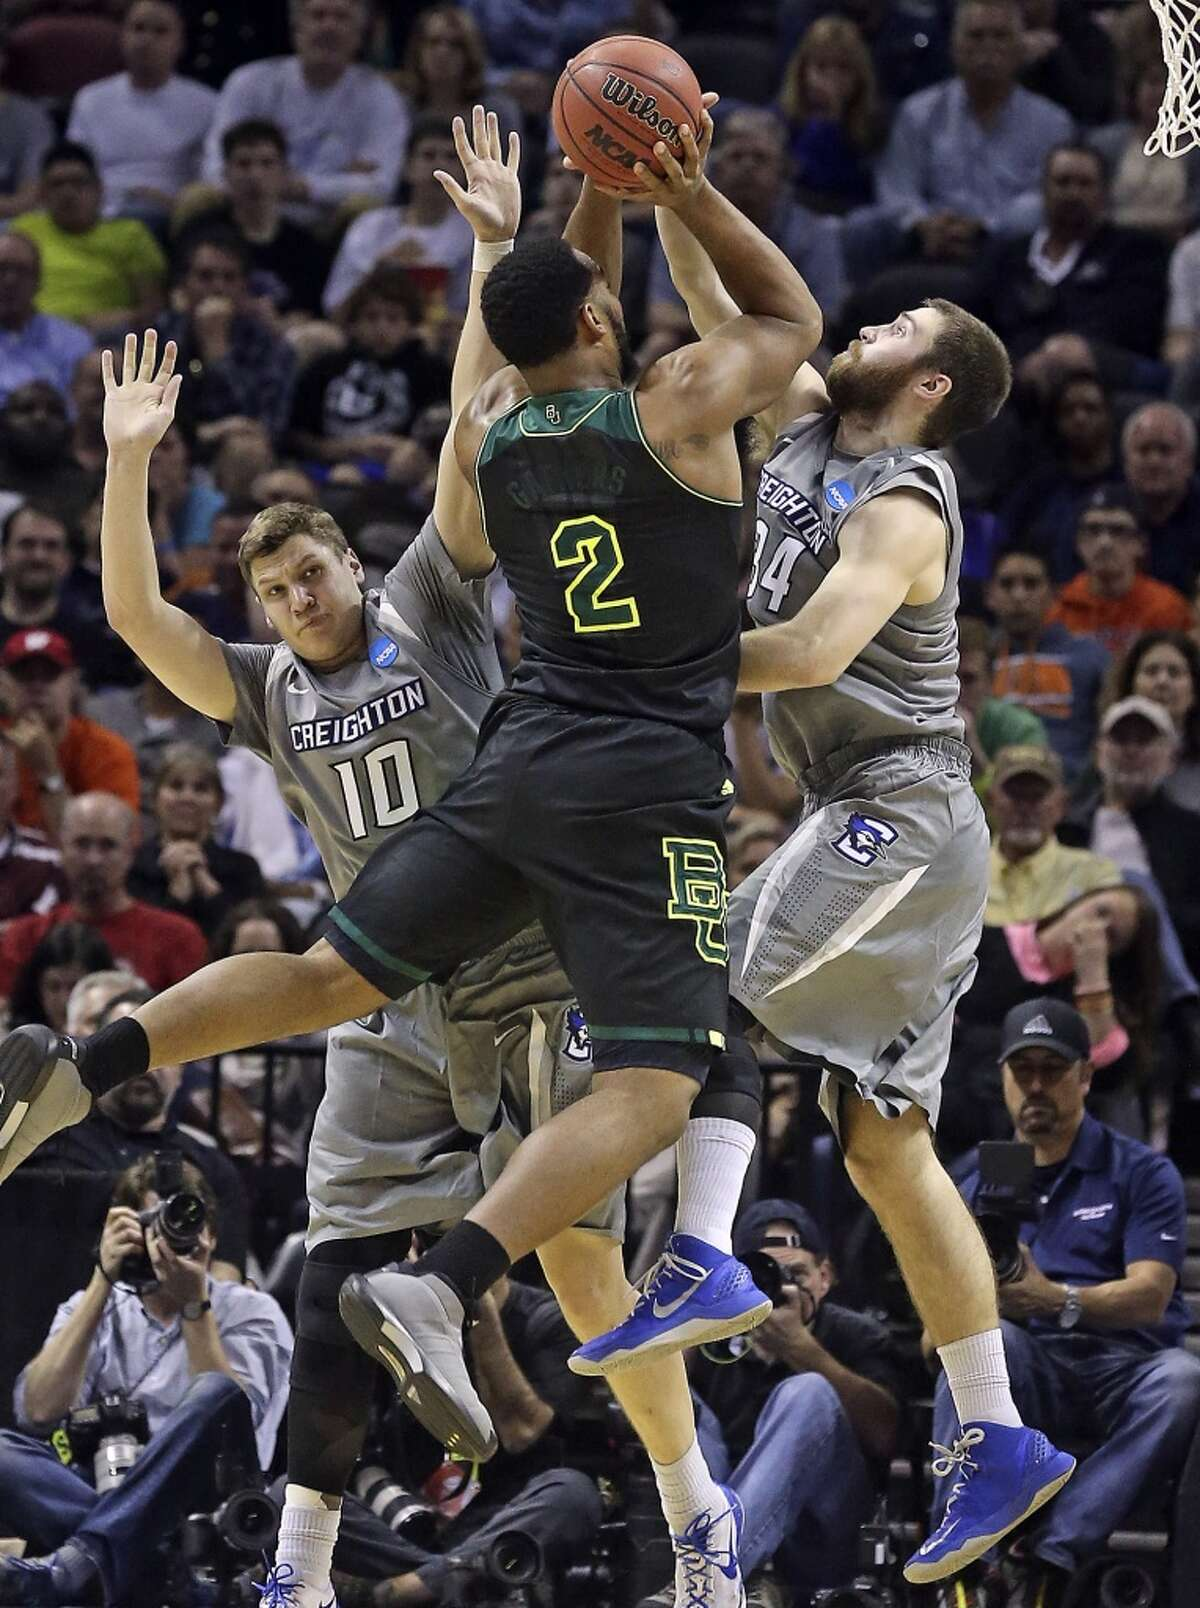 Bear forward Rico Gathers flies in for a shot against the off balance defense of Grant Gibbs (10) and Ethan Wragge as Baylor plays Creighton in the third round of the 2014 NCAA Divison I Men's Basketball Championship tournament at the AT&T Center on March 23, 2014.